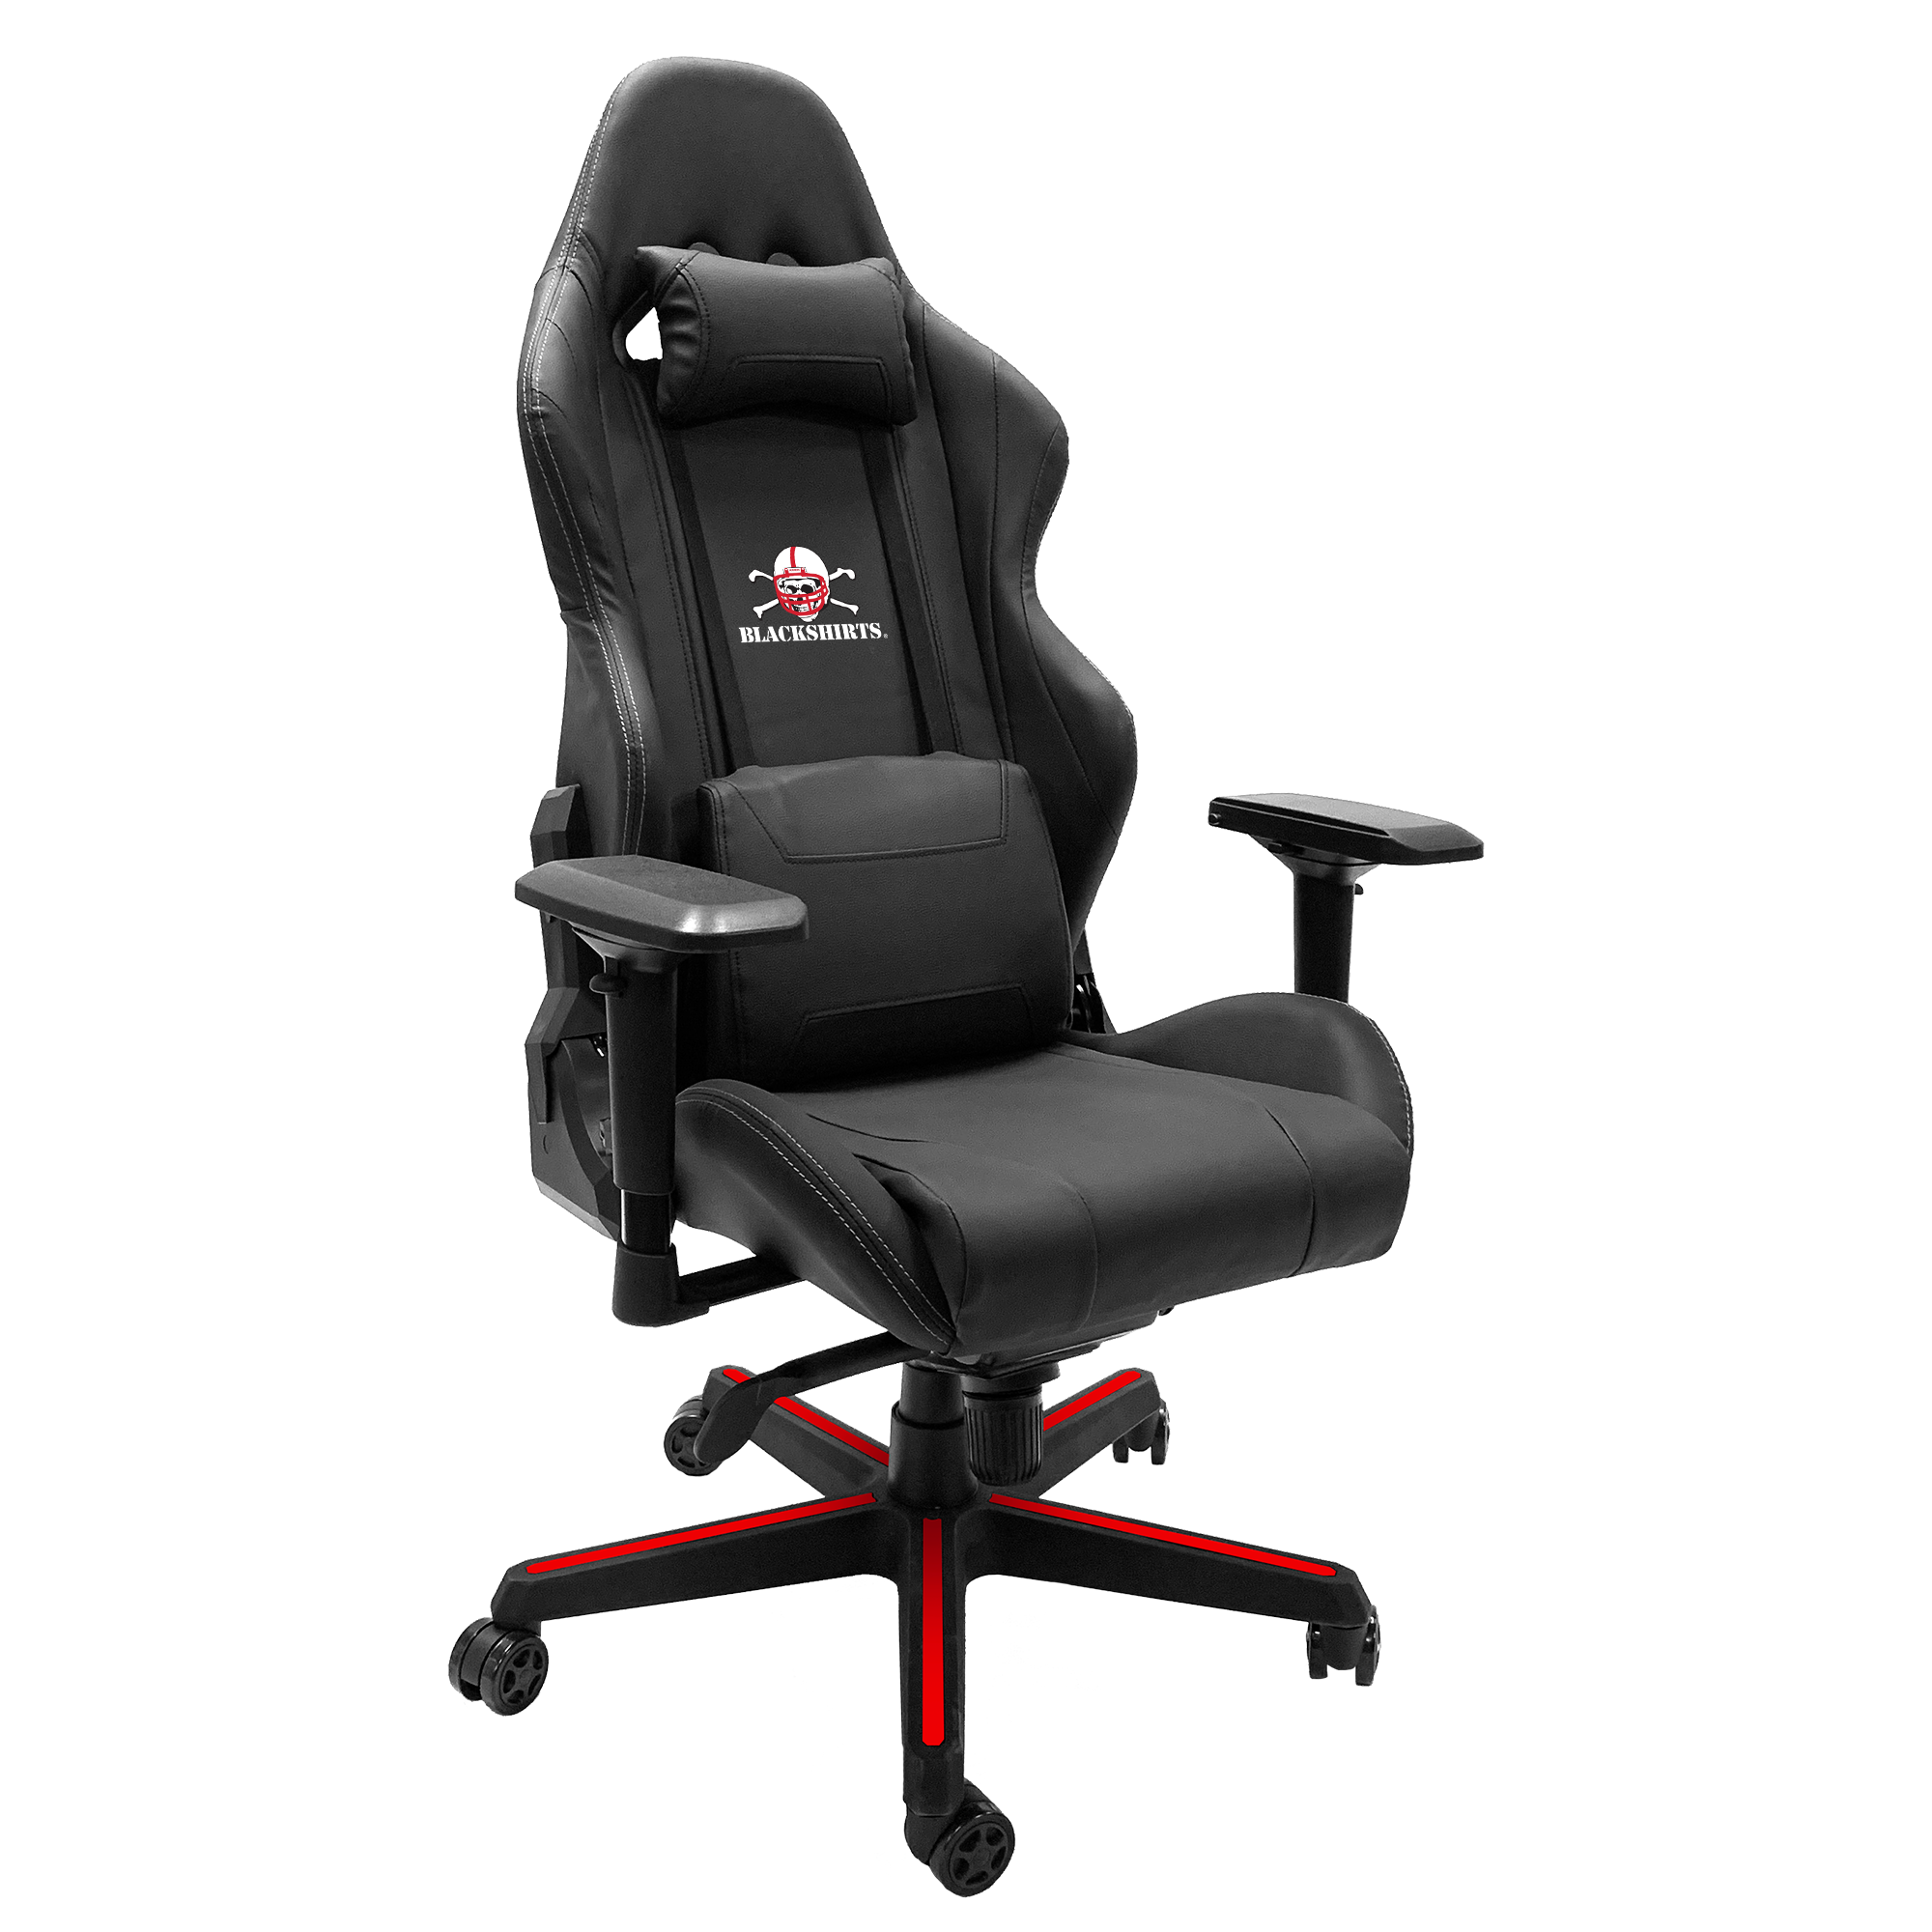 Xpression Gaming Chair with Nebraska Cornhuskers Secondary